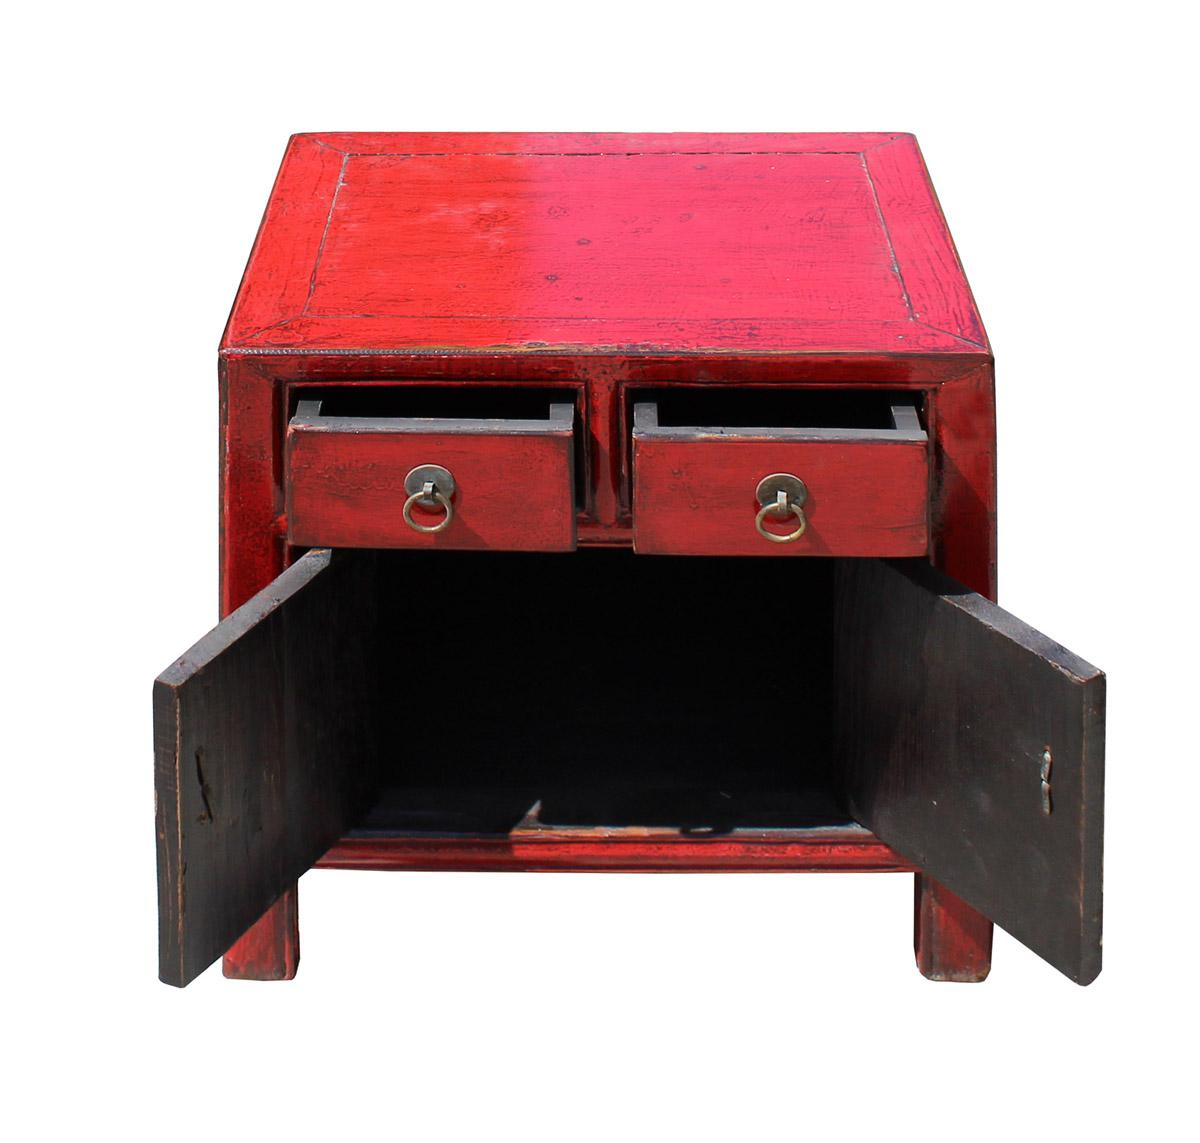 Asian Style Red Lacquer Small End Table Nightstand Chairish